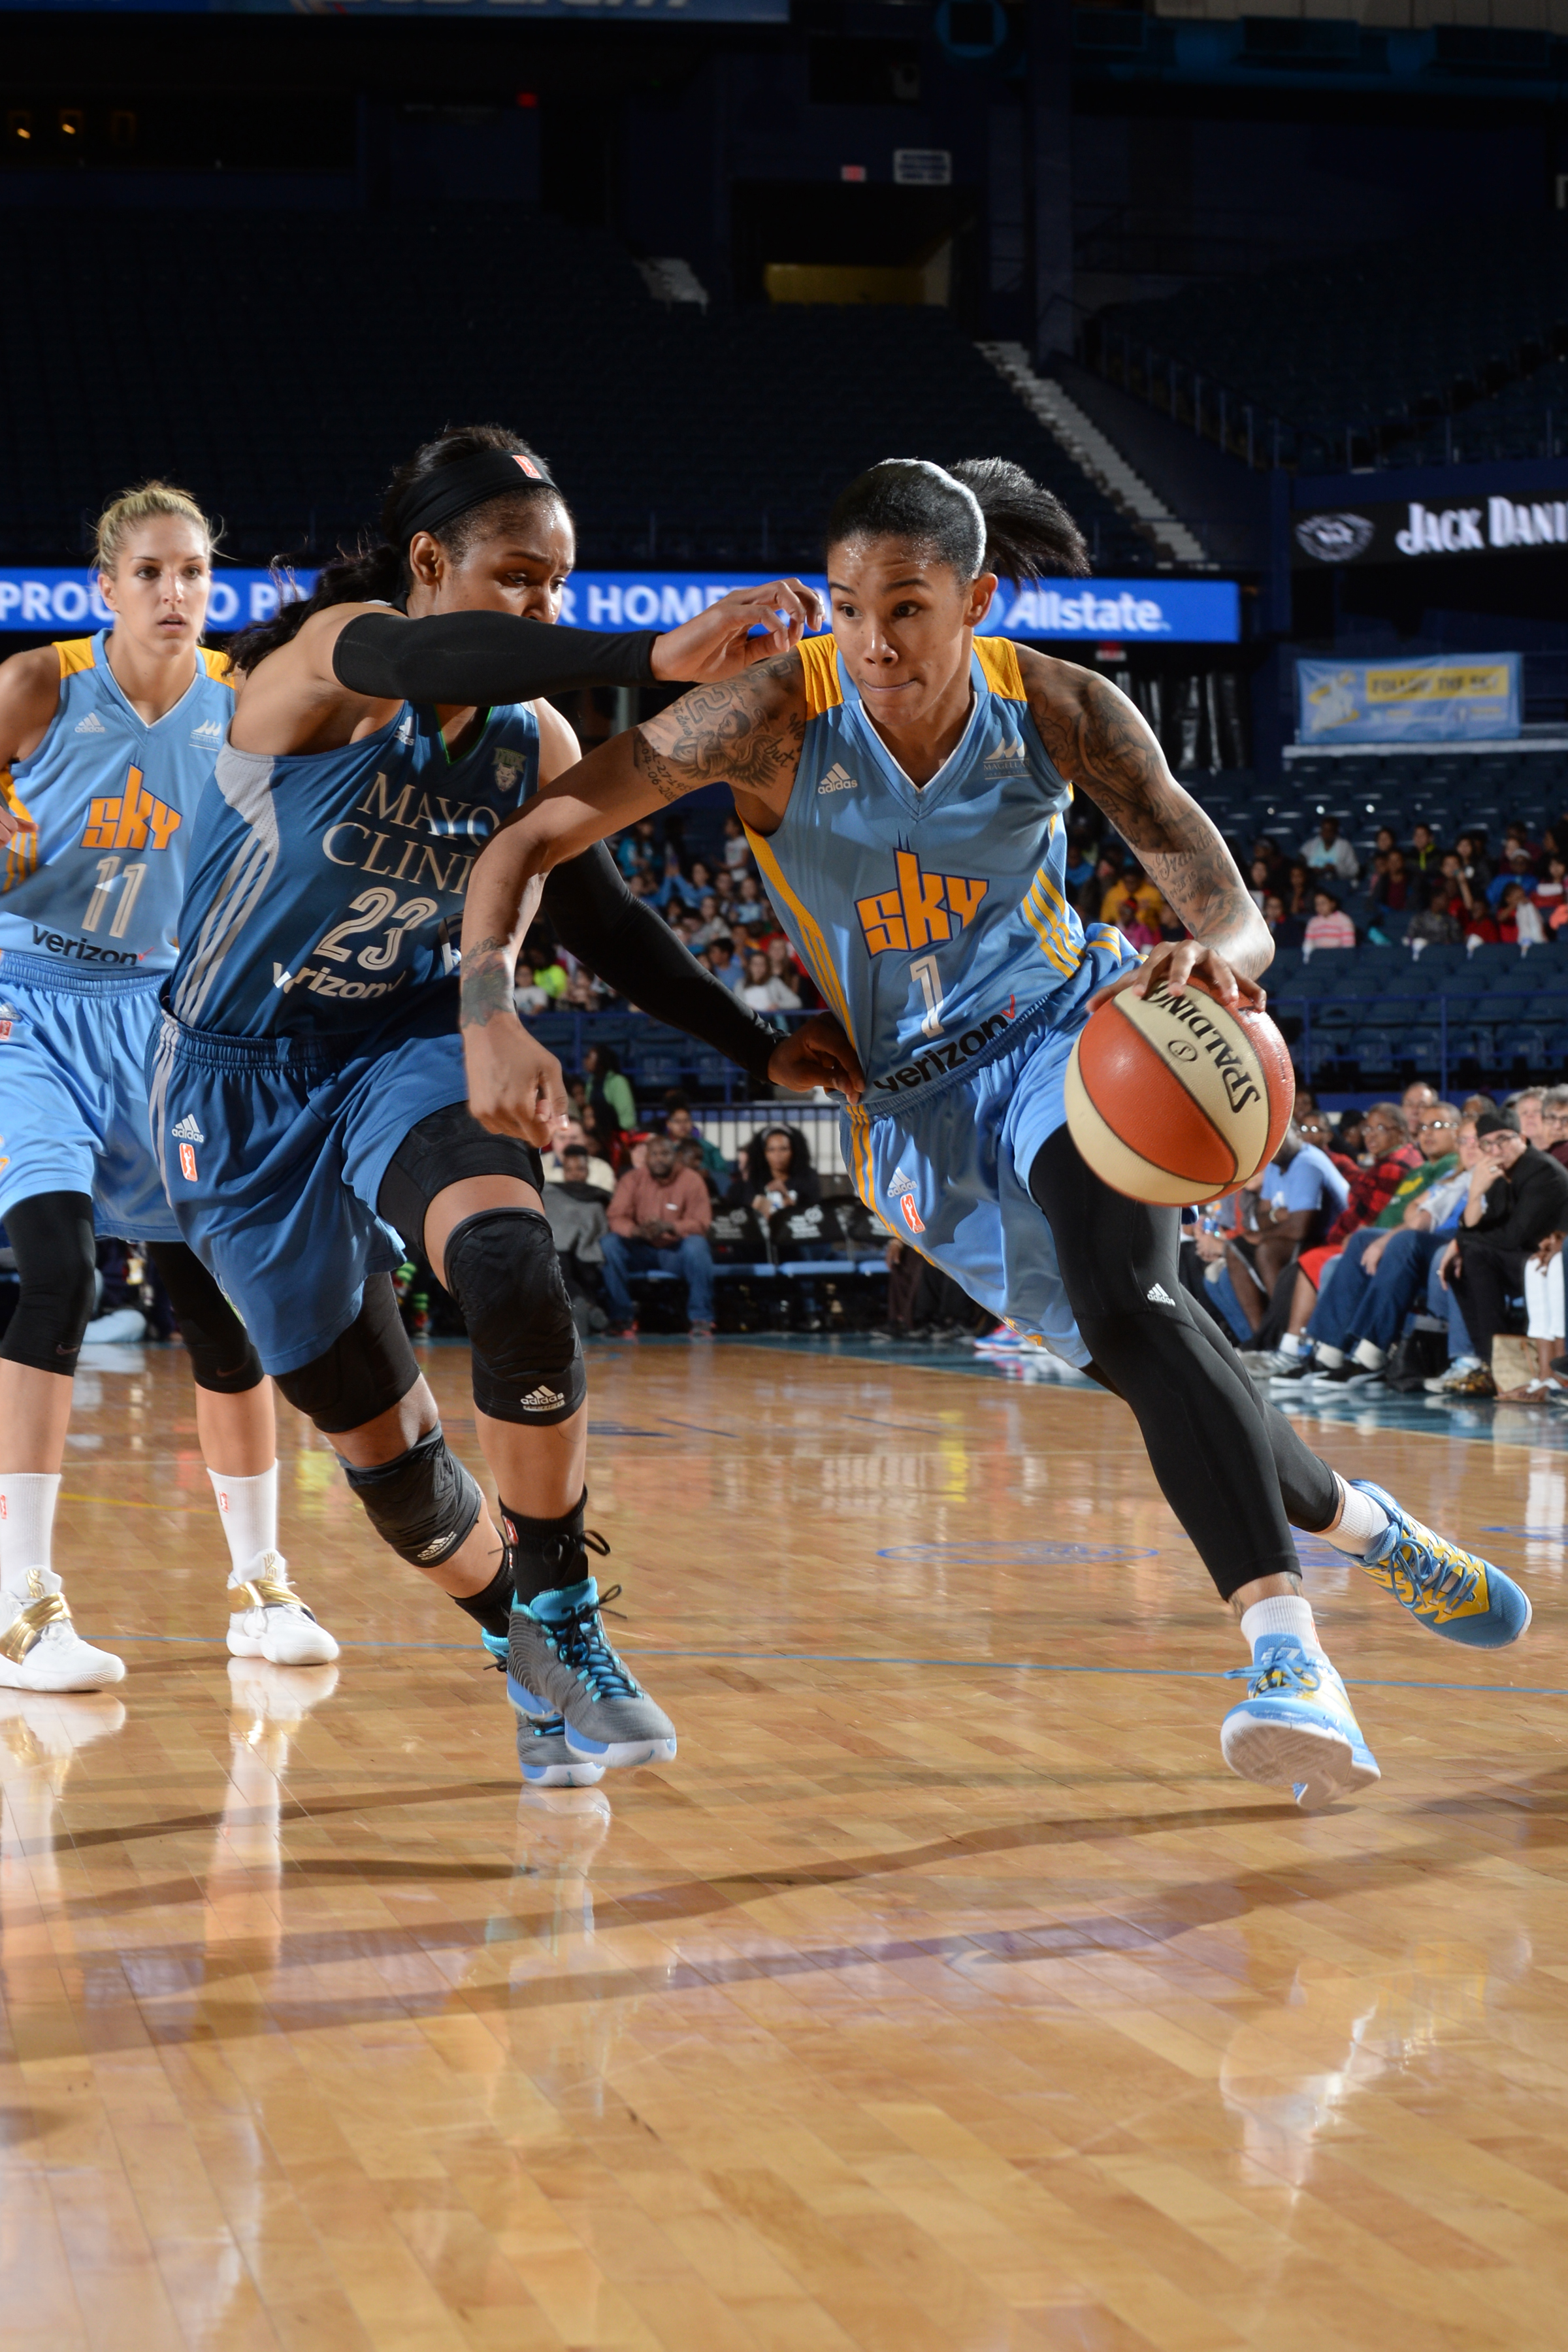 ROSEMONT, IL- MAY 18: Tamera Young #1 of the Chicago Sky drives to the basket against the Minnesota Lynx on May 18, 2016 at the Allstate Arena in Rosemont, Illinois. NOTE TO USER: User expressly acknowledges and agrees that, by downloading and/or using this photograph, user is consenting to the terms and conditions of the Getty Images License Agreement. Mandatory Copyright Notice: Copyright 2016 NBAE (Photo by Randy Belice/NBAE via Getty Images)